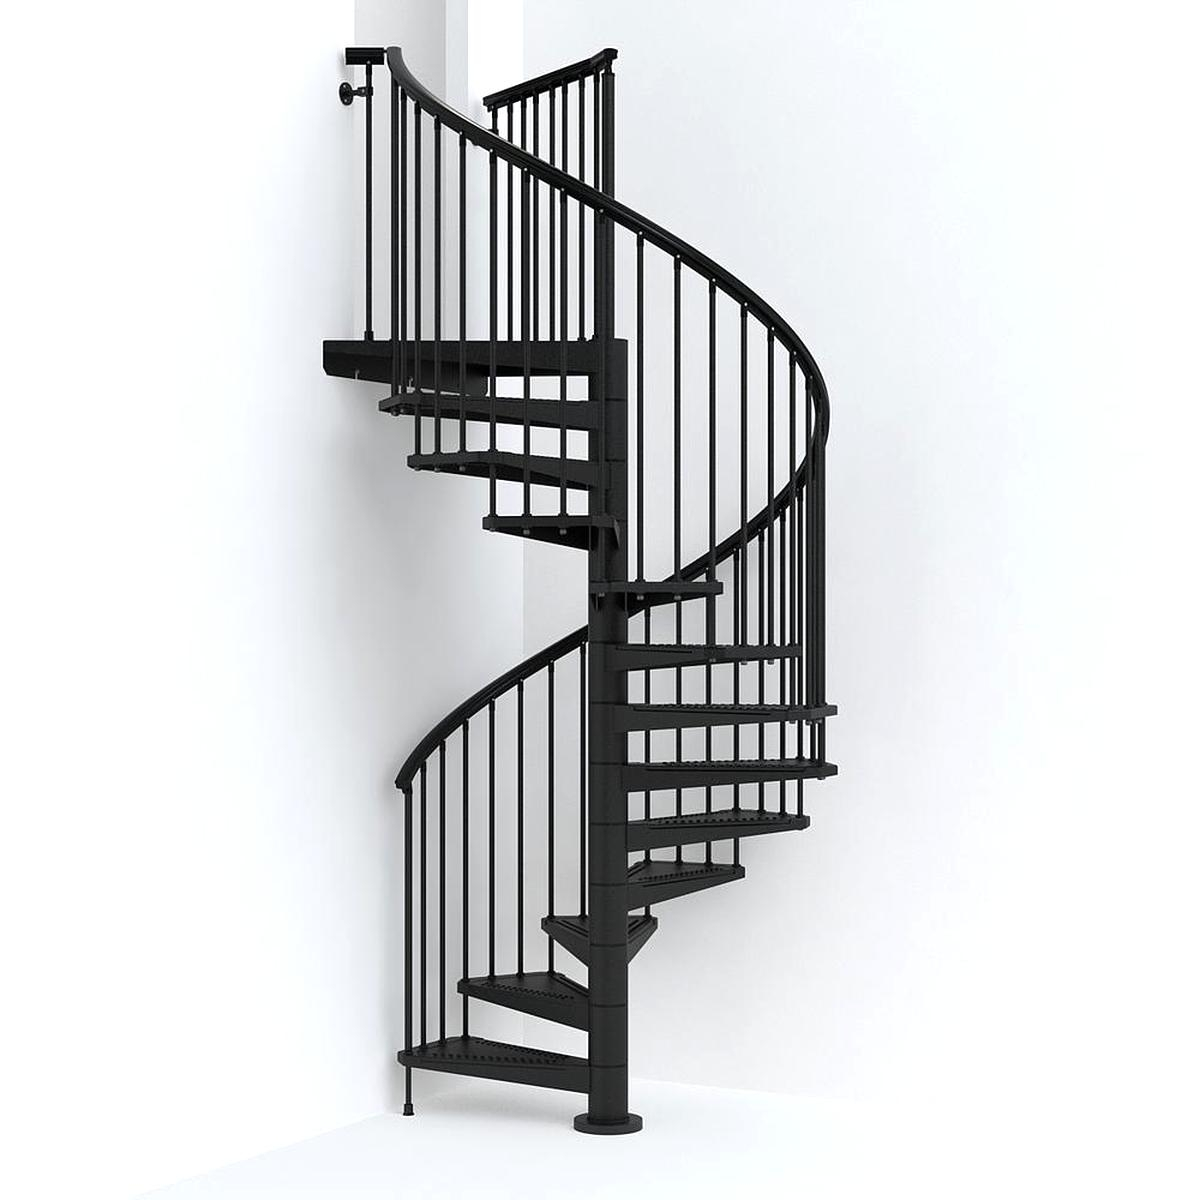 Spiral Staircase For Sale Only 2 Left At 65   Spiral Staircase For Sale Craigslist   Wrought Iron   Railing   Stairway   Staircase Kits   Handrail